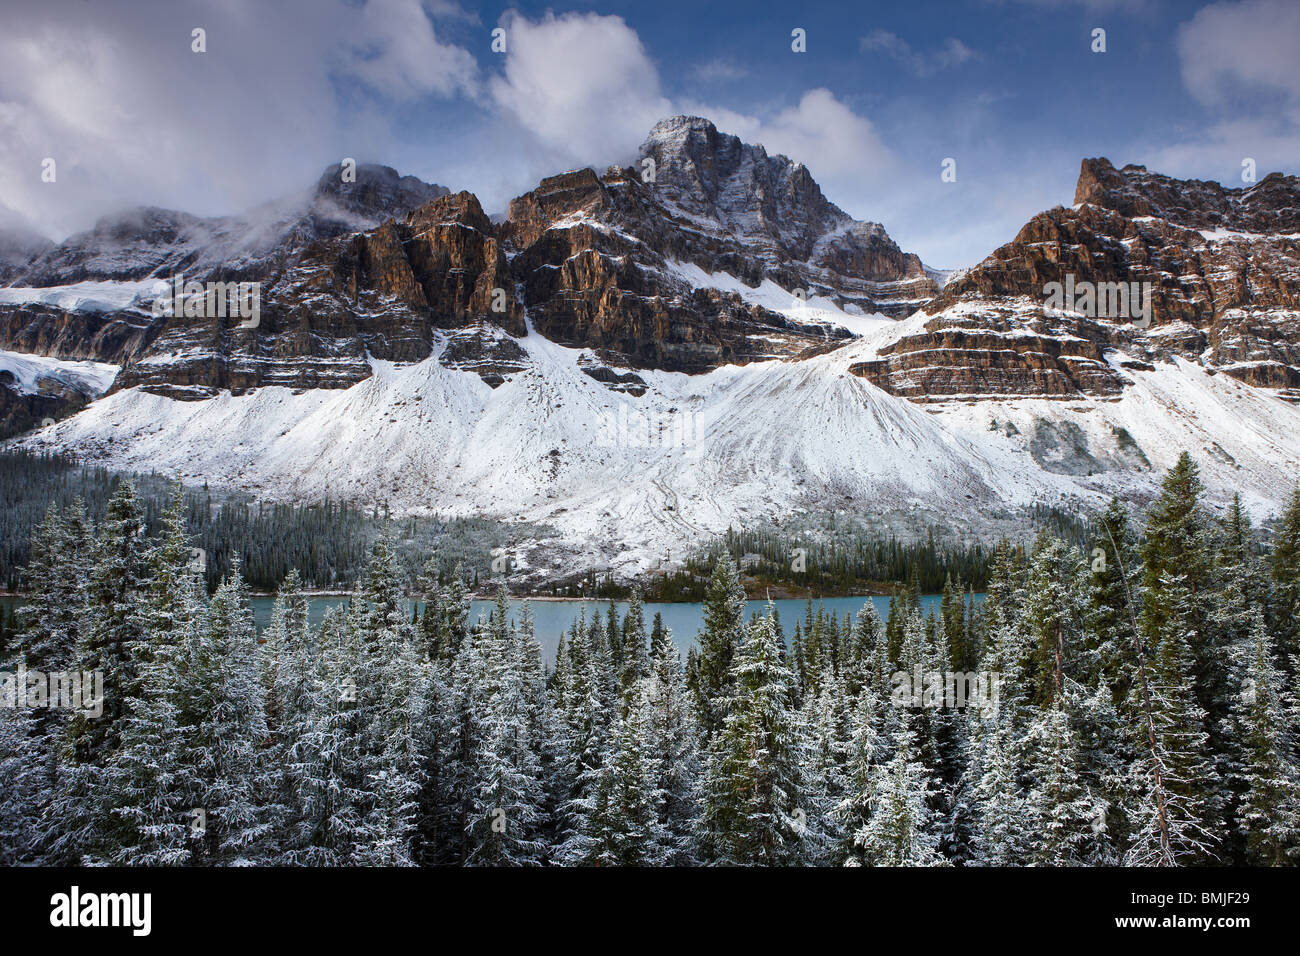 Mount Crowfoot & the Crowfoot Glacier above Bow Lake in the snow, Icefields Parkway, Banff National Park, Alberta, - Stock Image